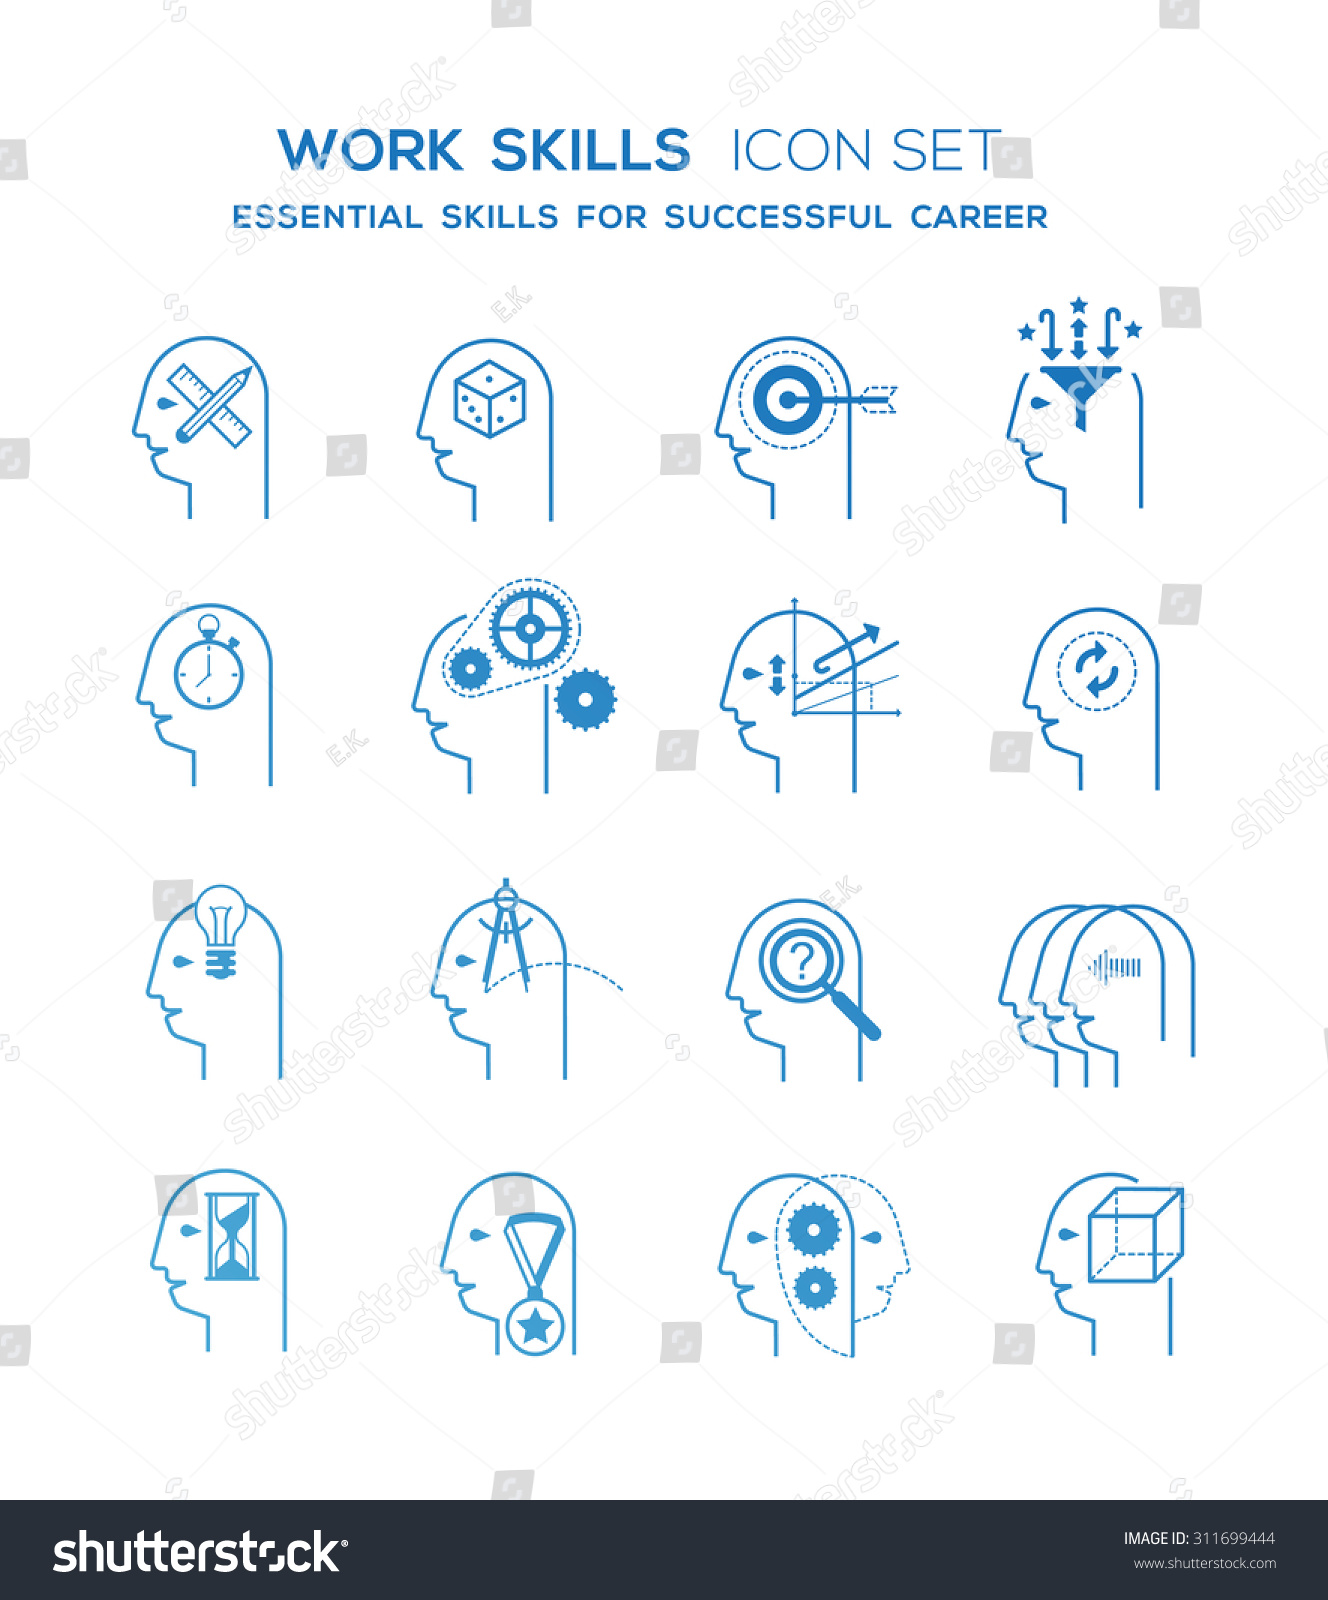 line icons set representing abstract symbols stock vector line icons set representing abstract symbols of personal skills essential for successful education and career